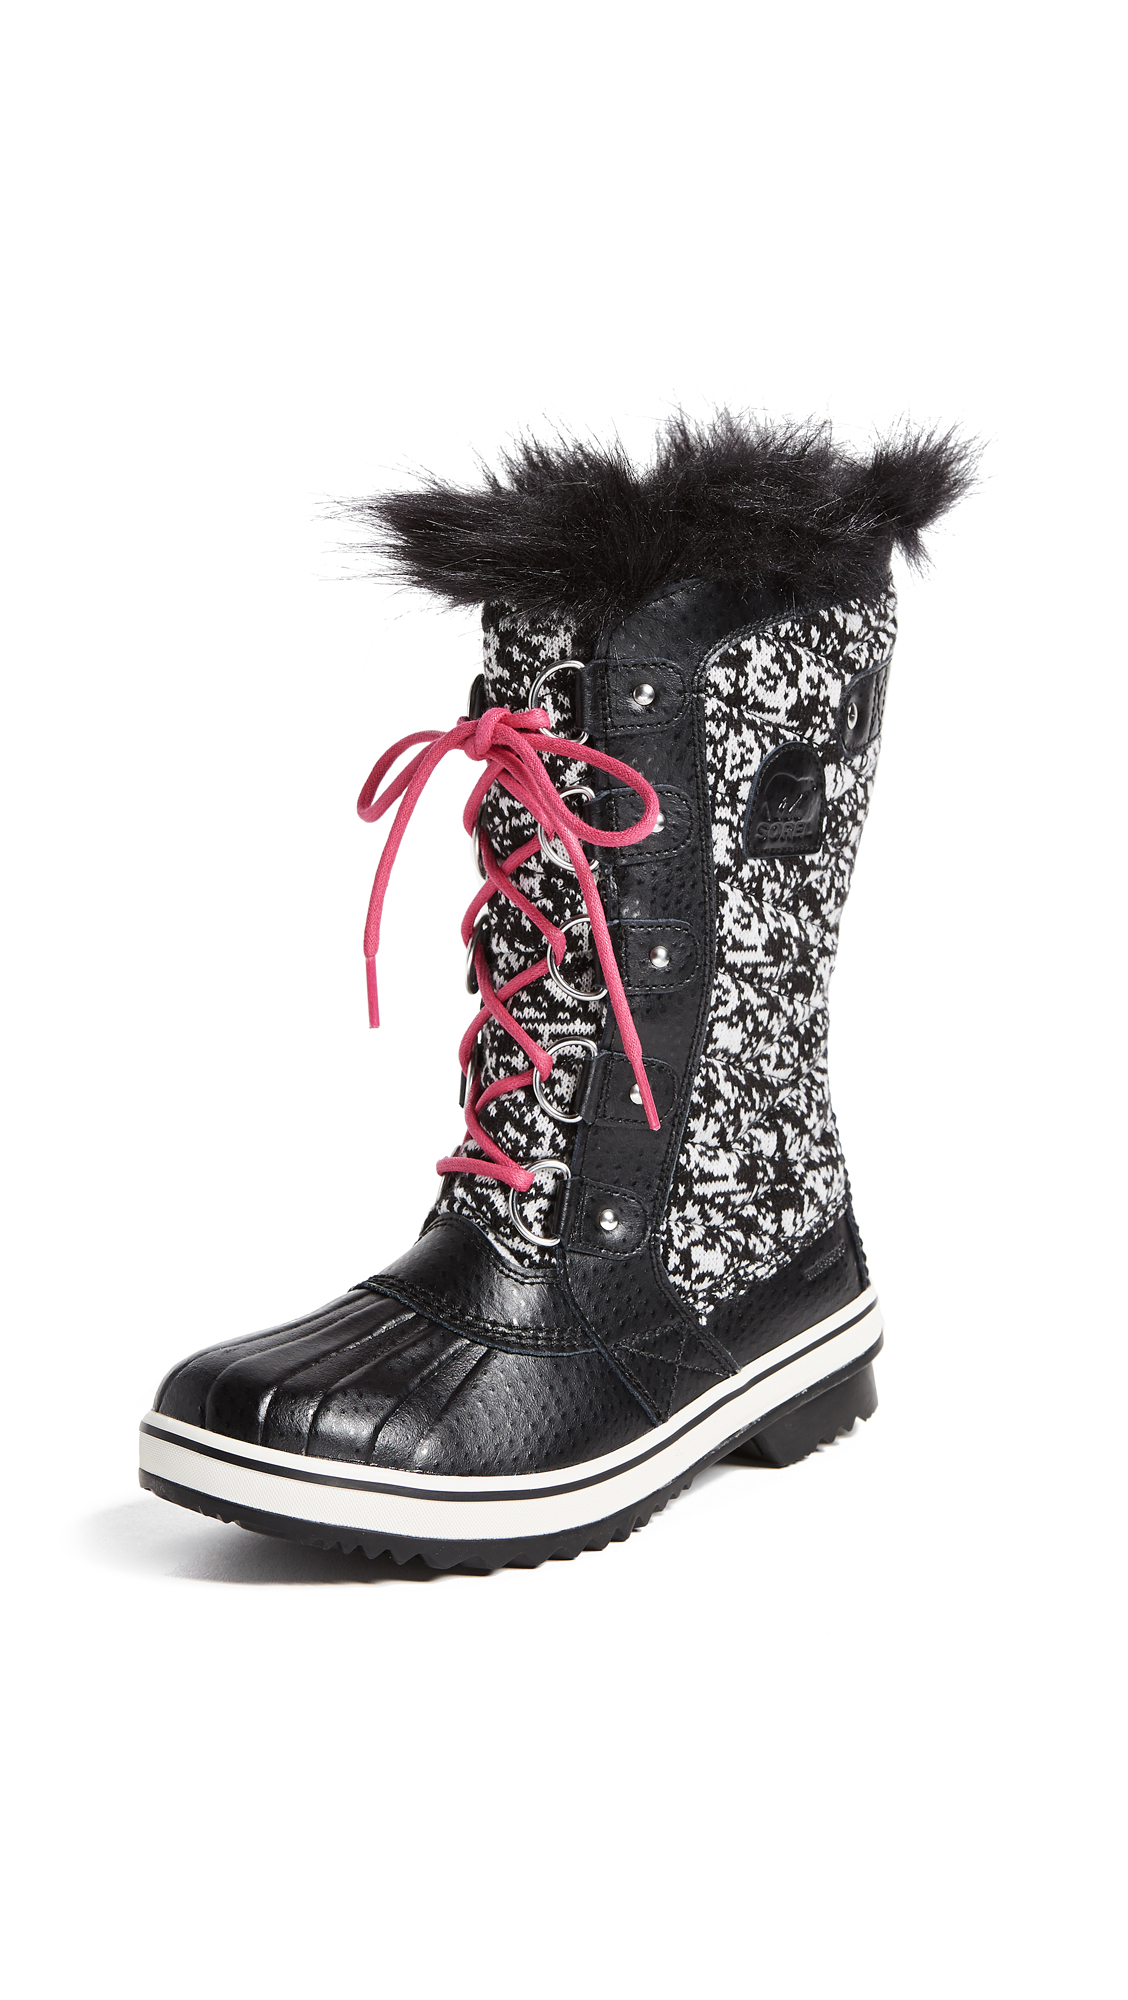 Sorel Tofino II Boots - Black/Deep Blush